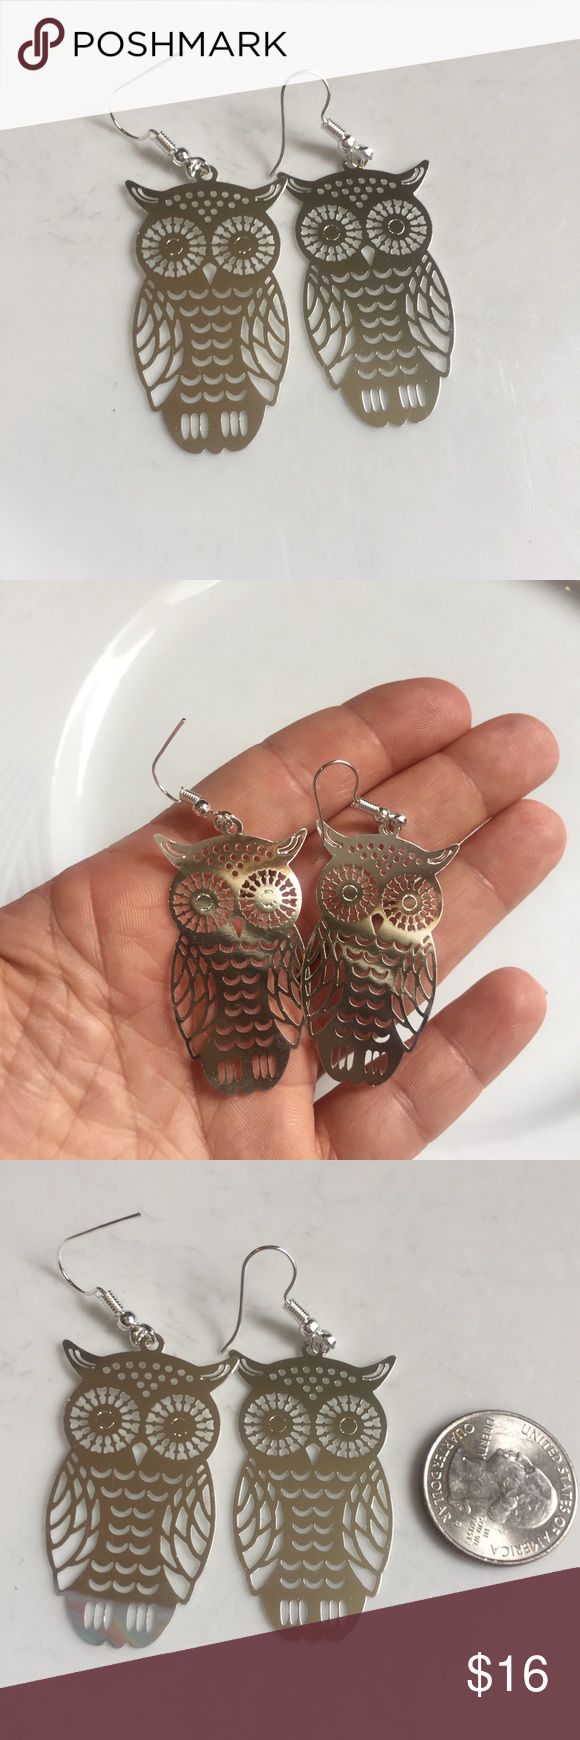 Jewelry Funny for your unique style pictures advise dress for summer in 2019